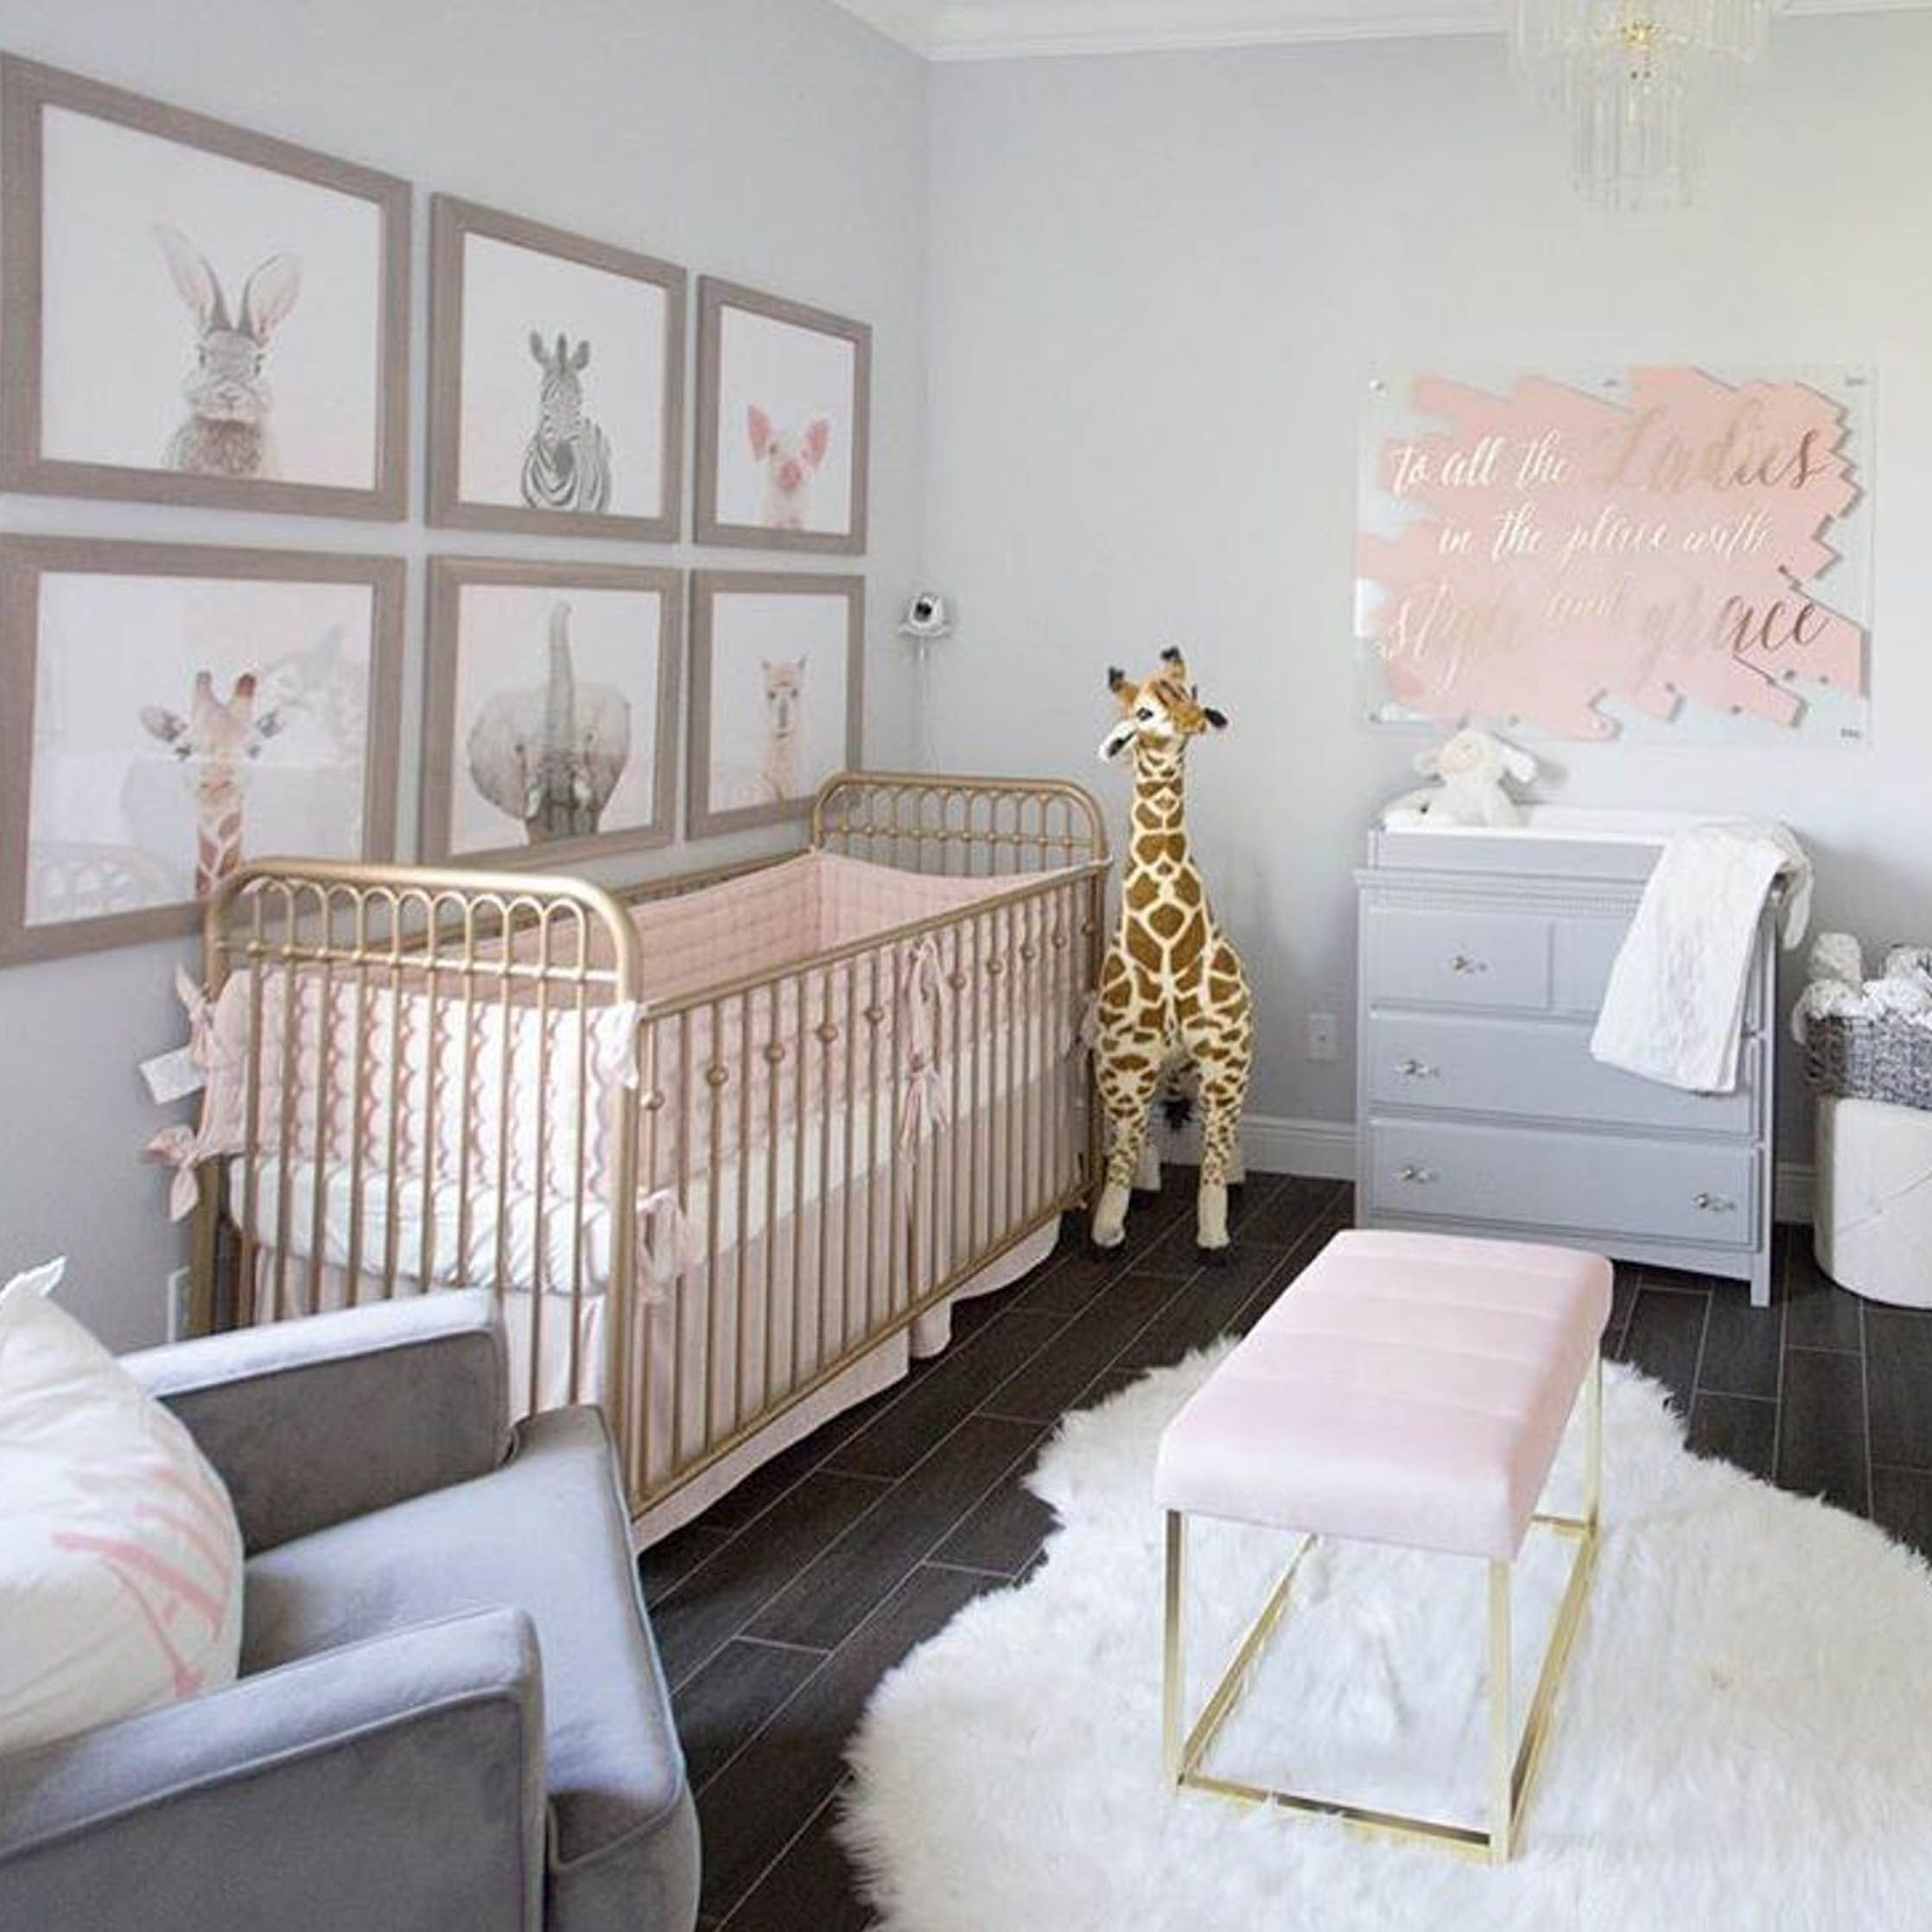 Toddler Bedroom Wall Art Simple Bedroom Curtain Ideas Images Of Bedroom Design Creative Bedroom Wall Decor Ideas: Here's What's Trending In The Nursery